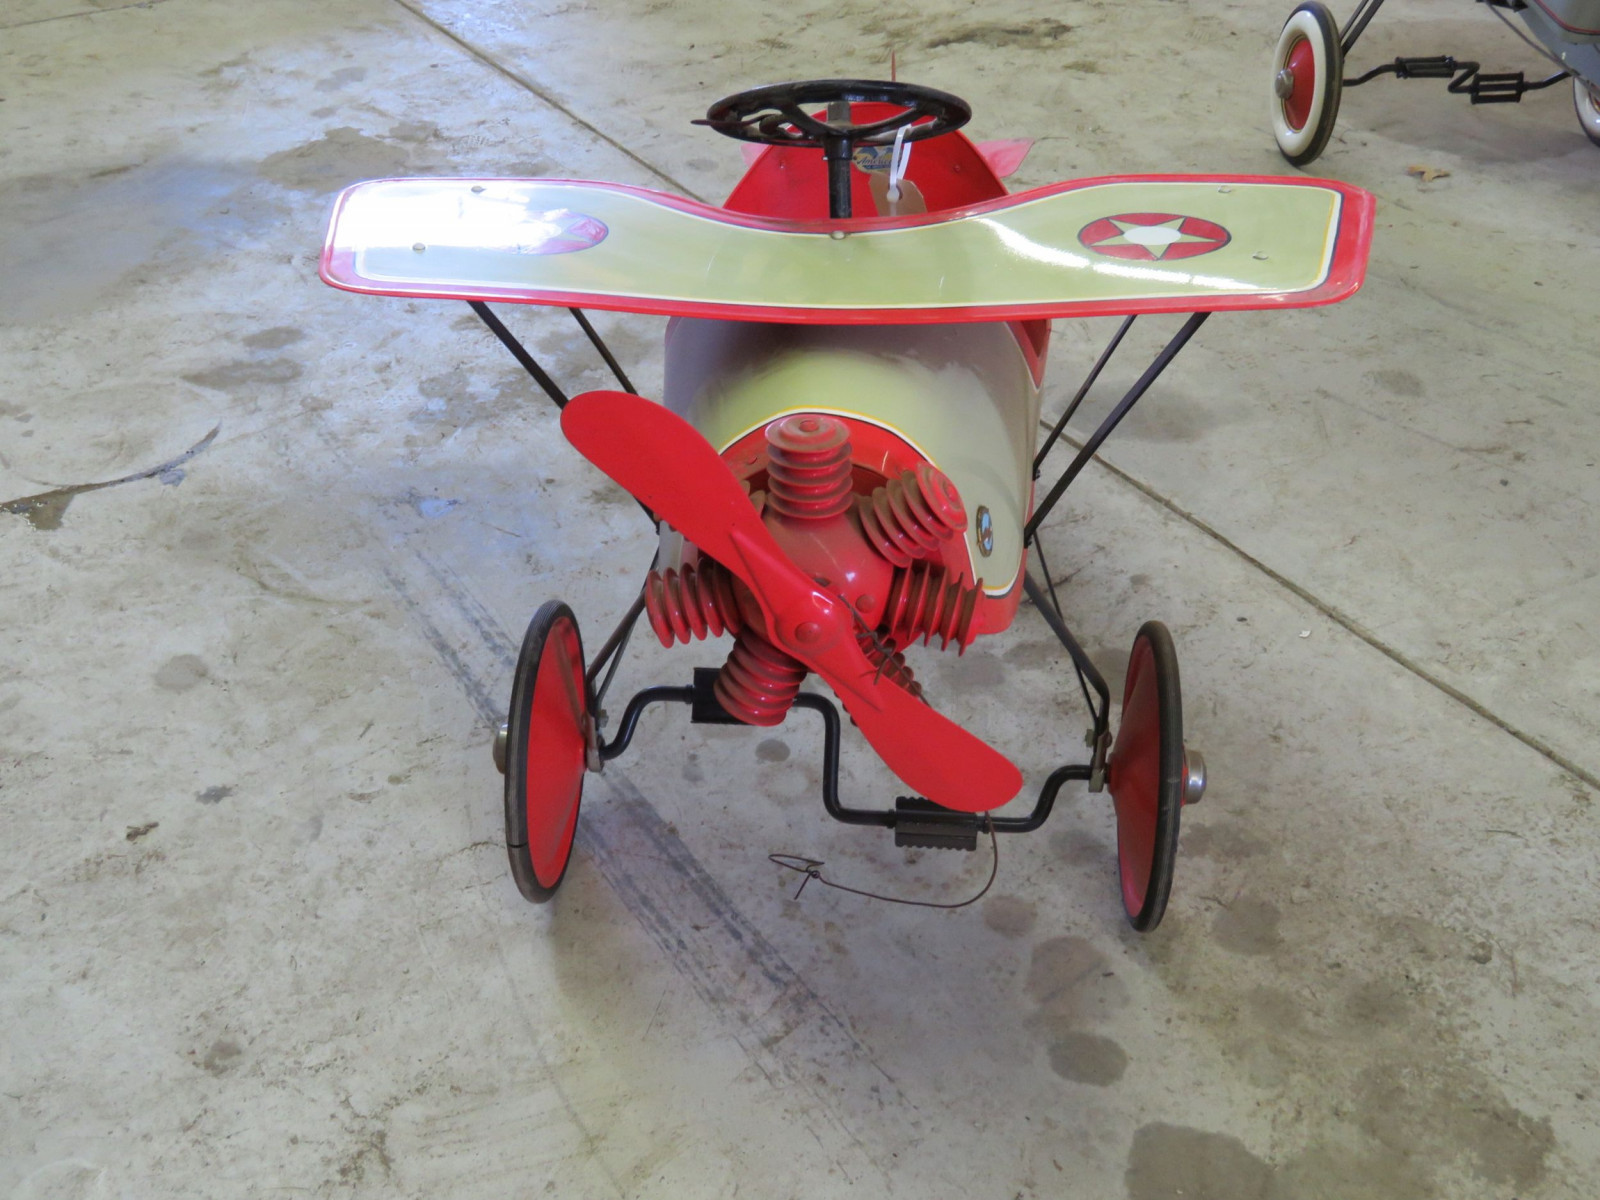 Homemade Spirit of St. Louis Pedal Airplane - Image 2